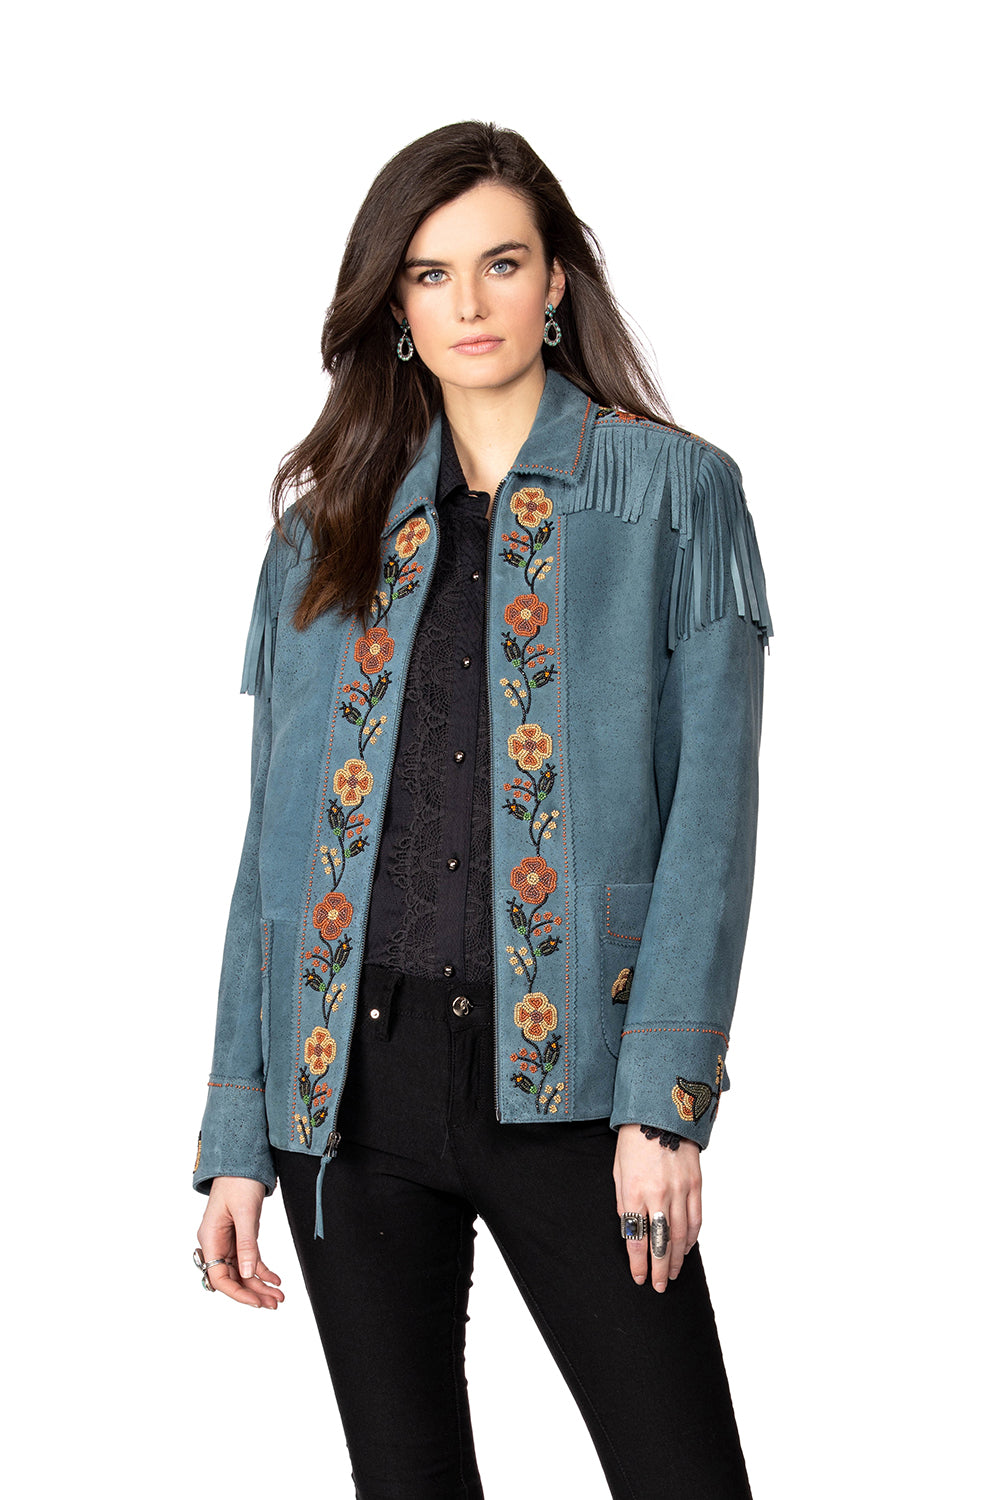 The Showman Jacket